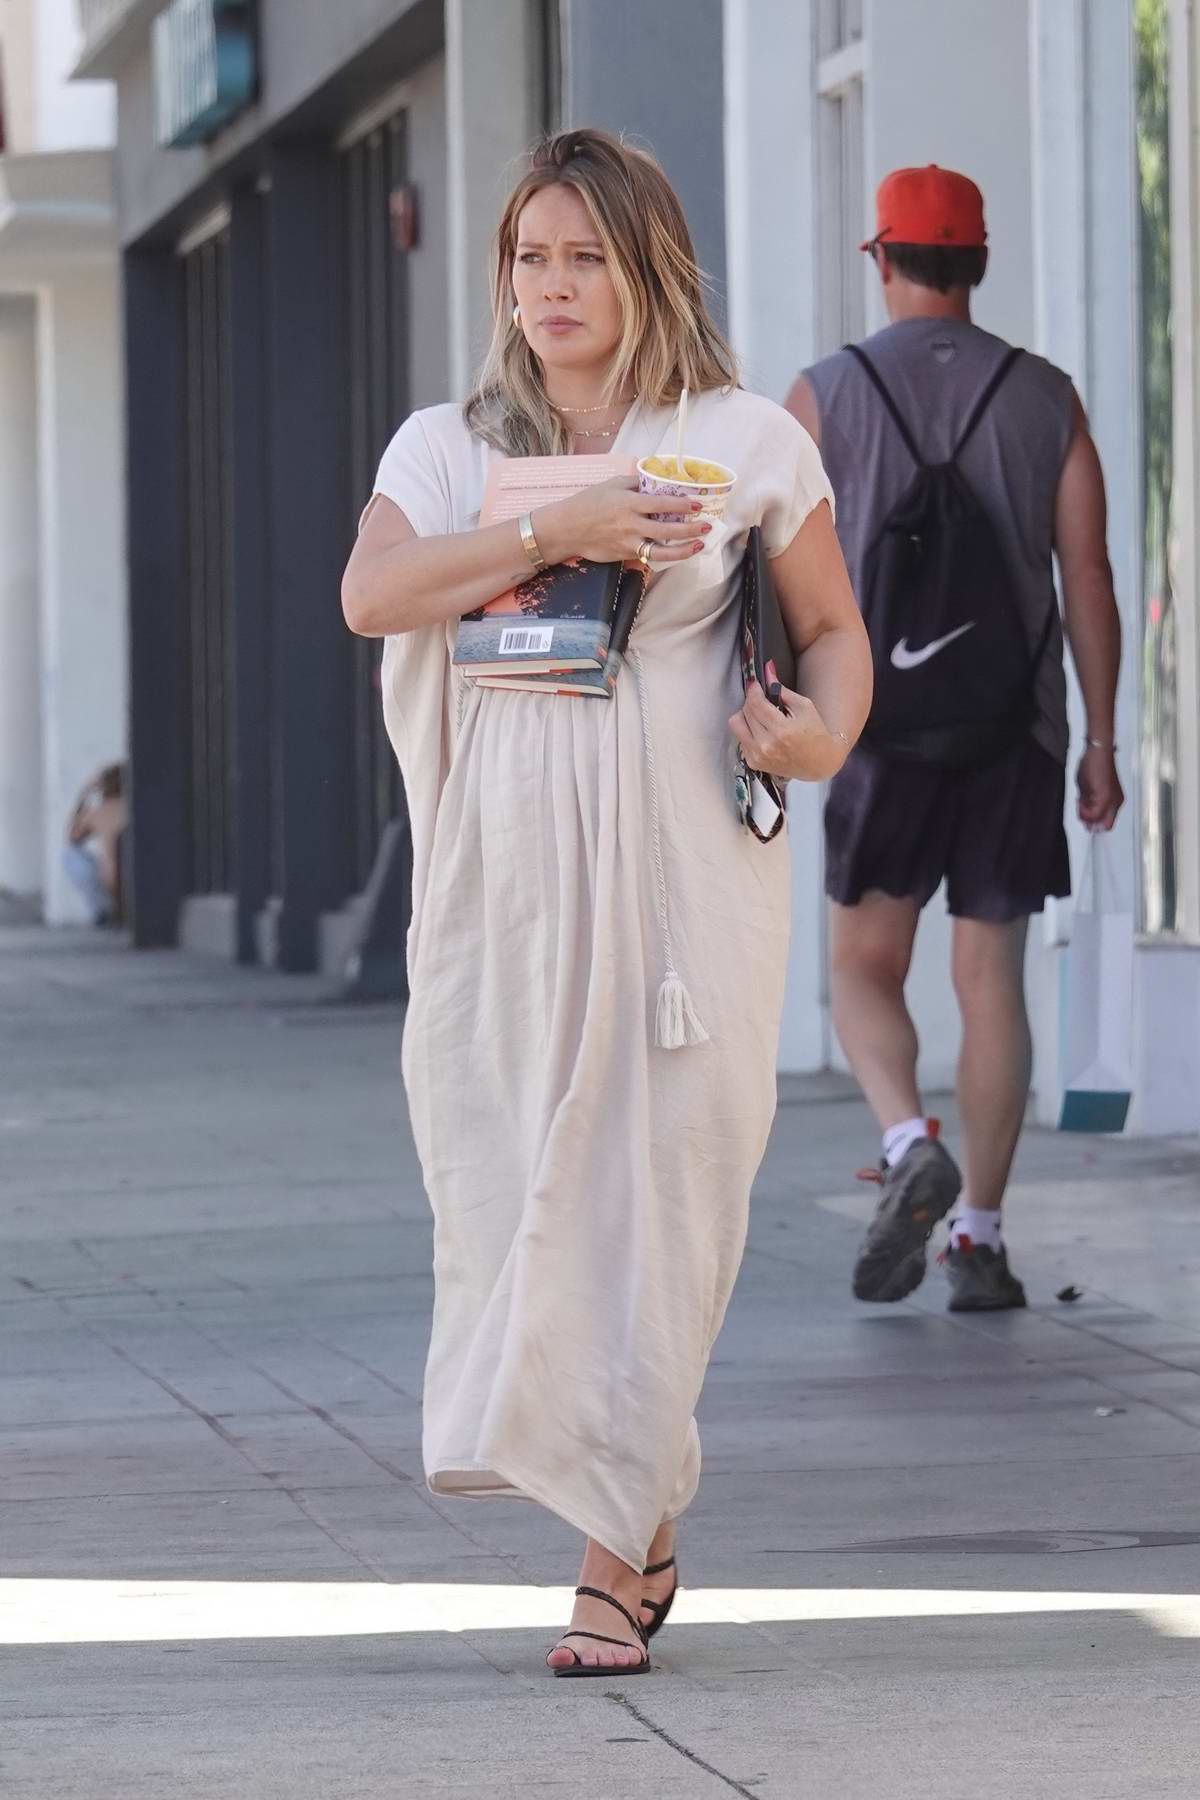 Hilary Duff juggles her frozen fruit cup her new 'delia owens' books and her keys while out in Los Angeles